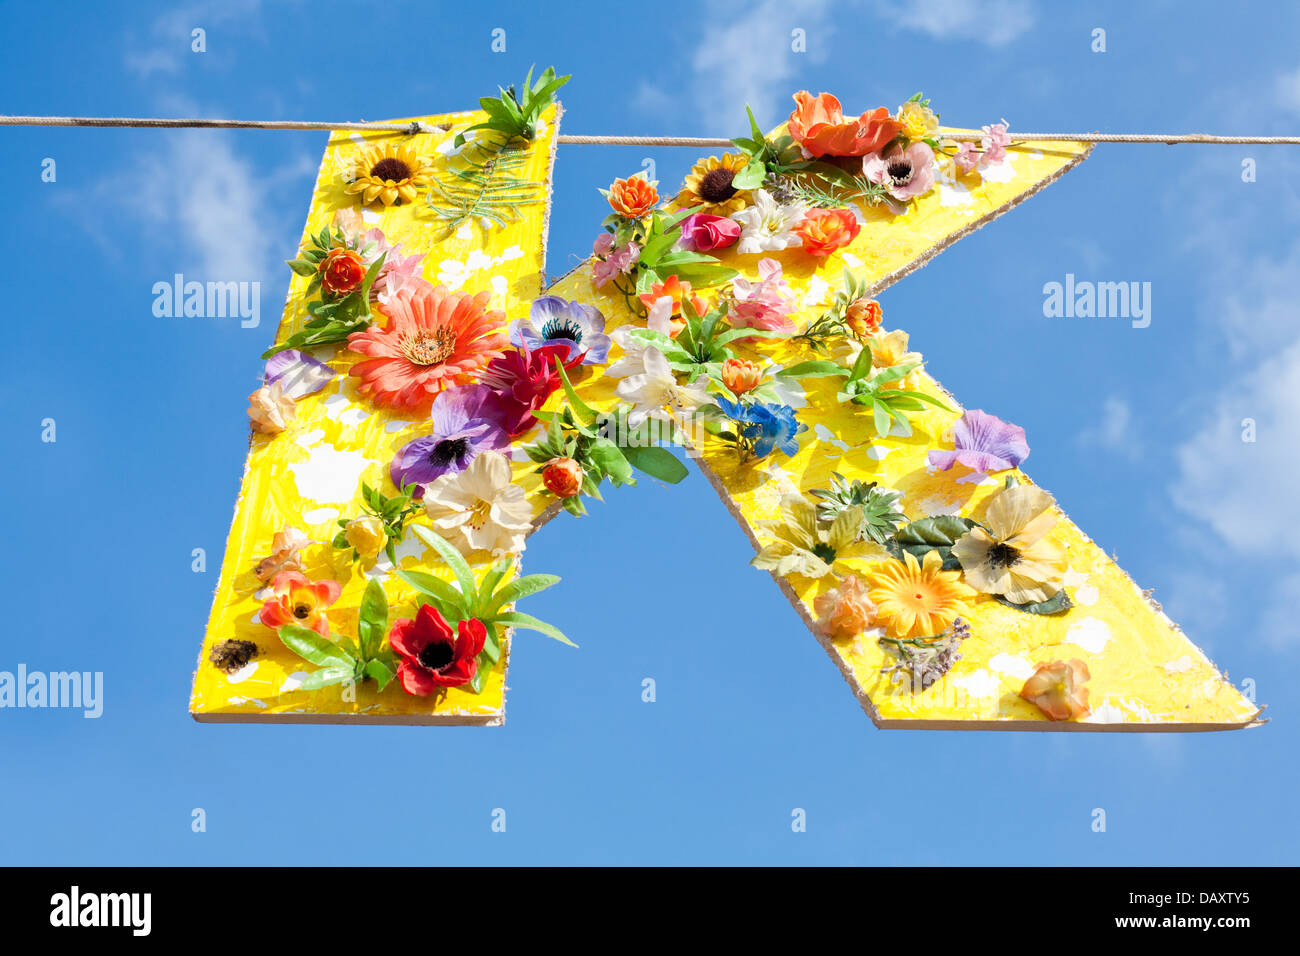 Cardboard cutout of the letter K, painted yellow and covered in flowers. Hanging on a line against a blue summer - Stock Image